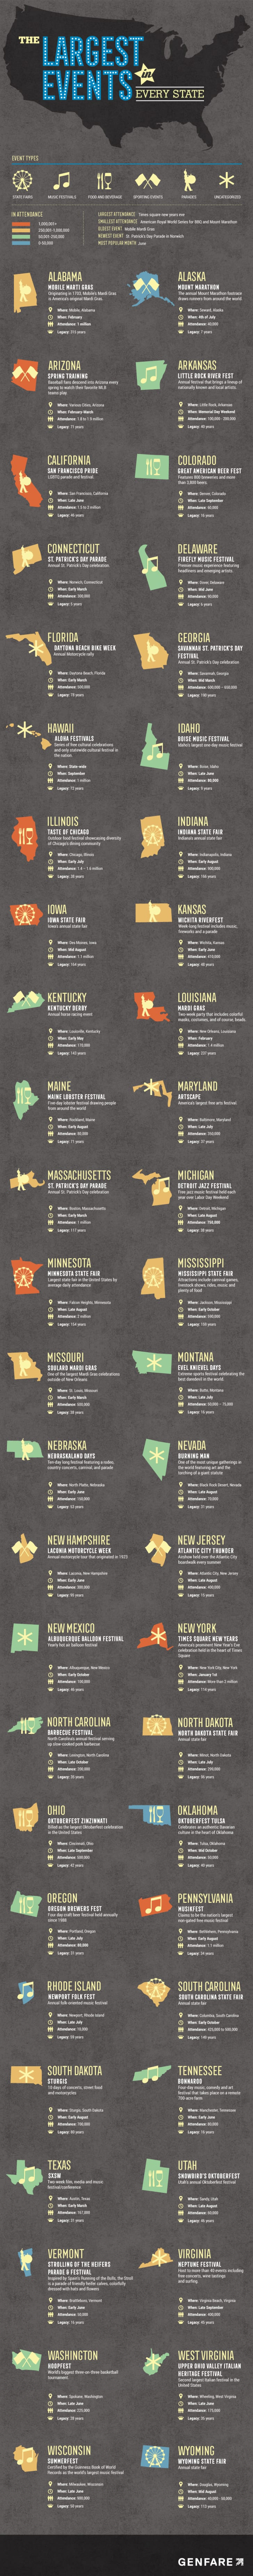 A graphic list with the 50 states pictured next to information about their biggest events